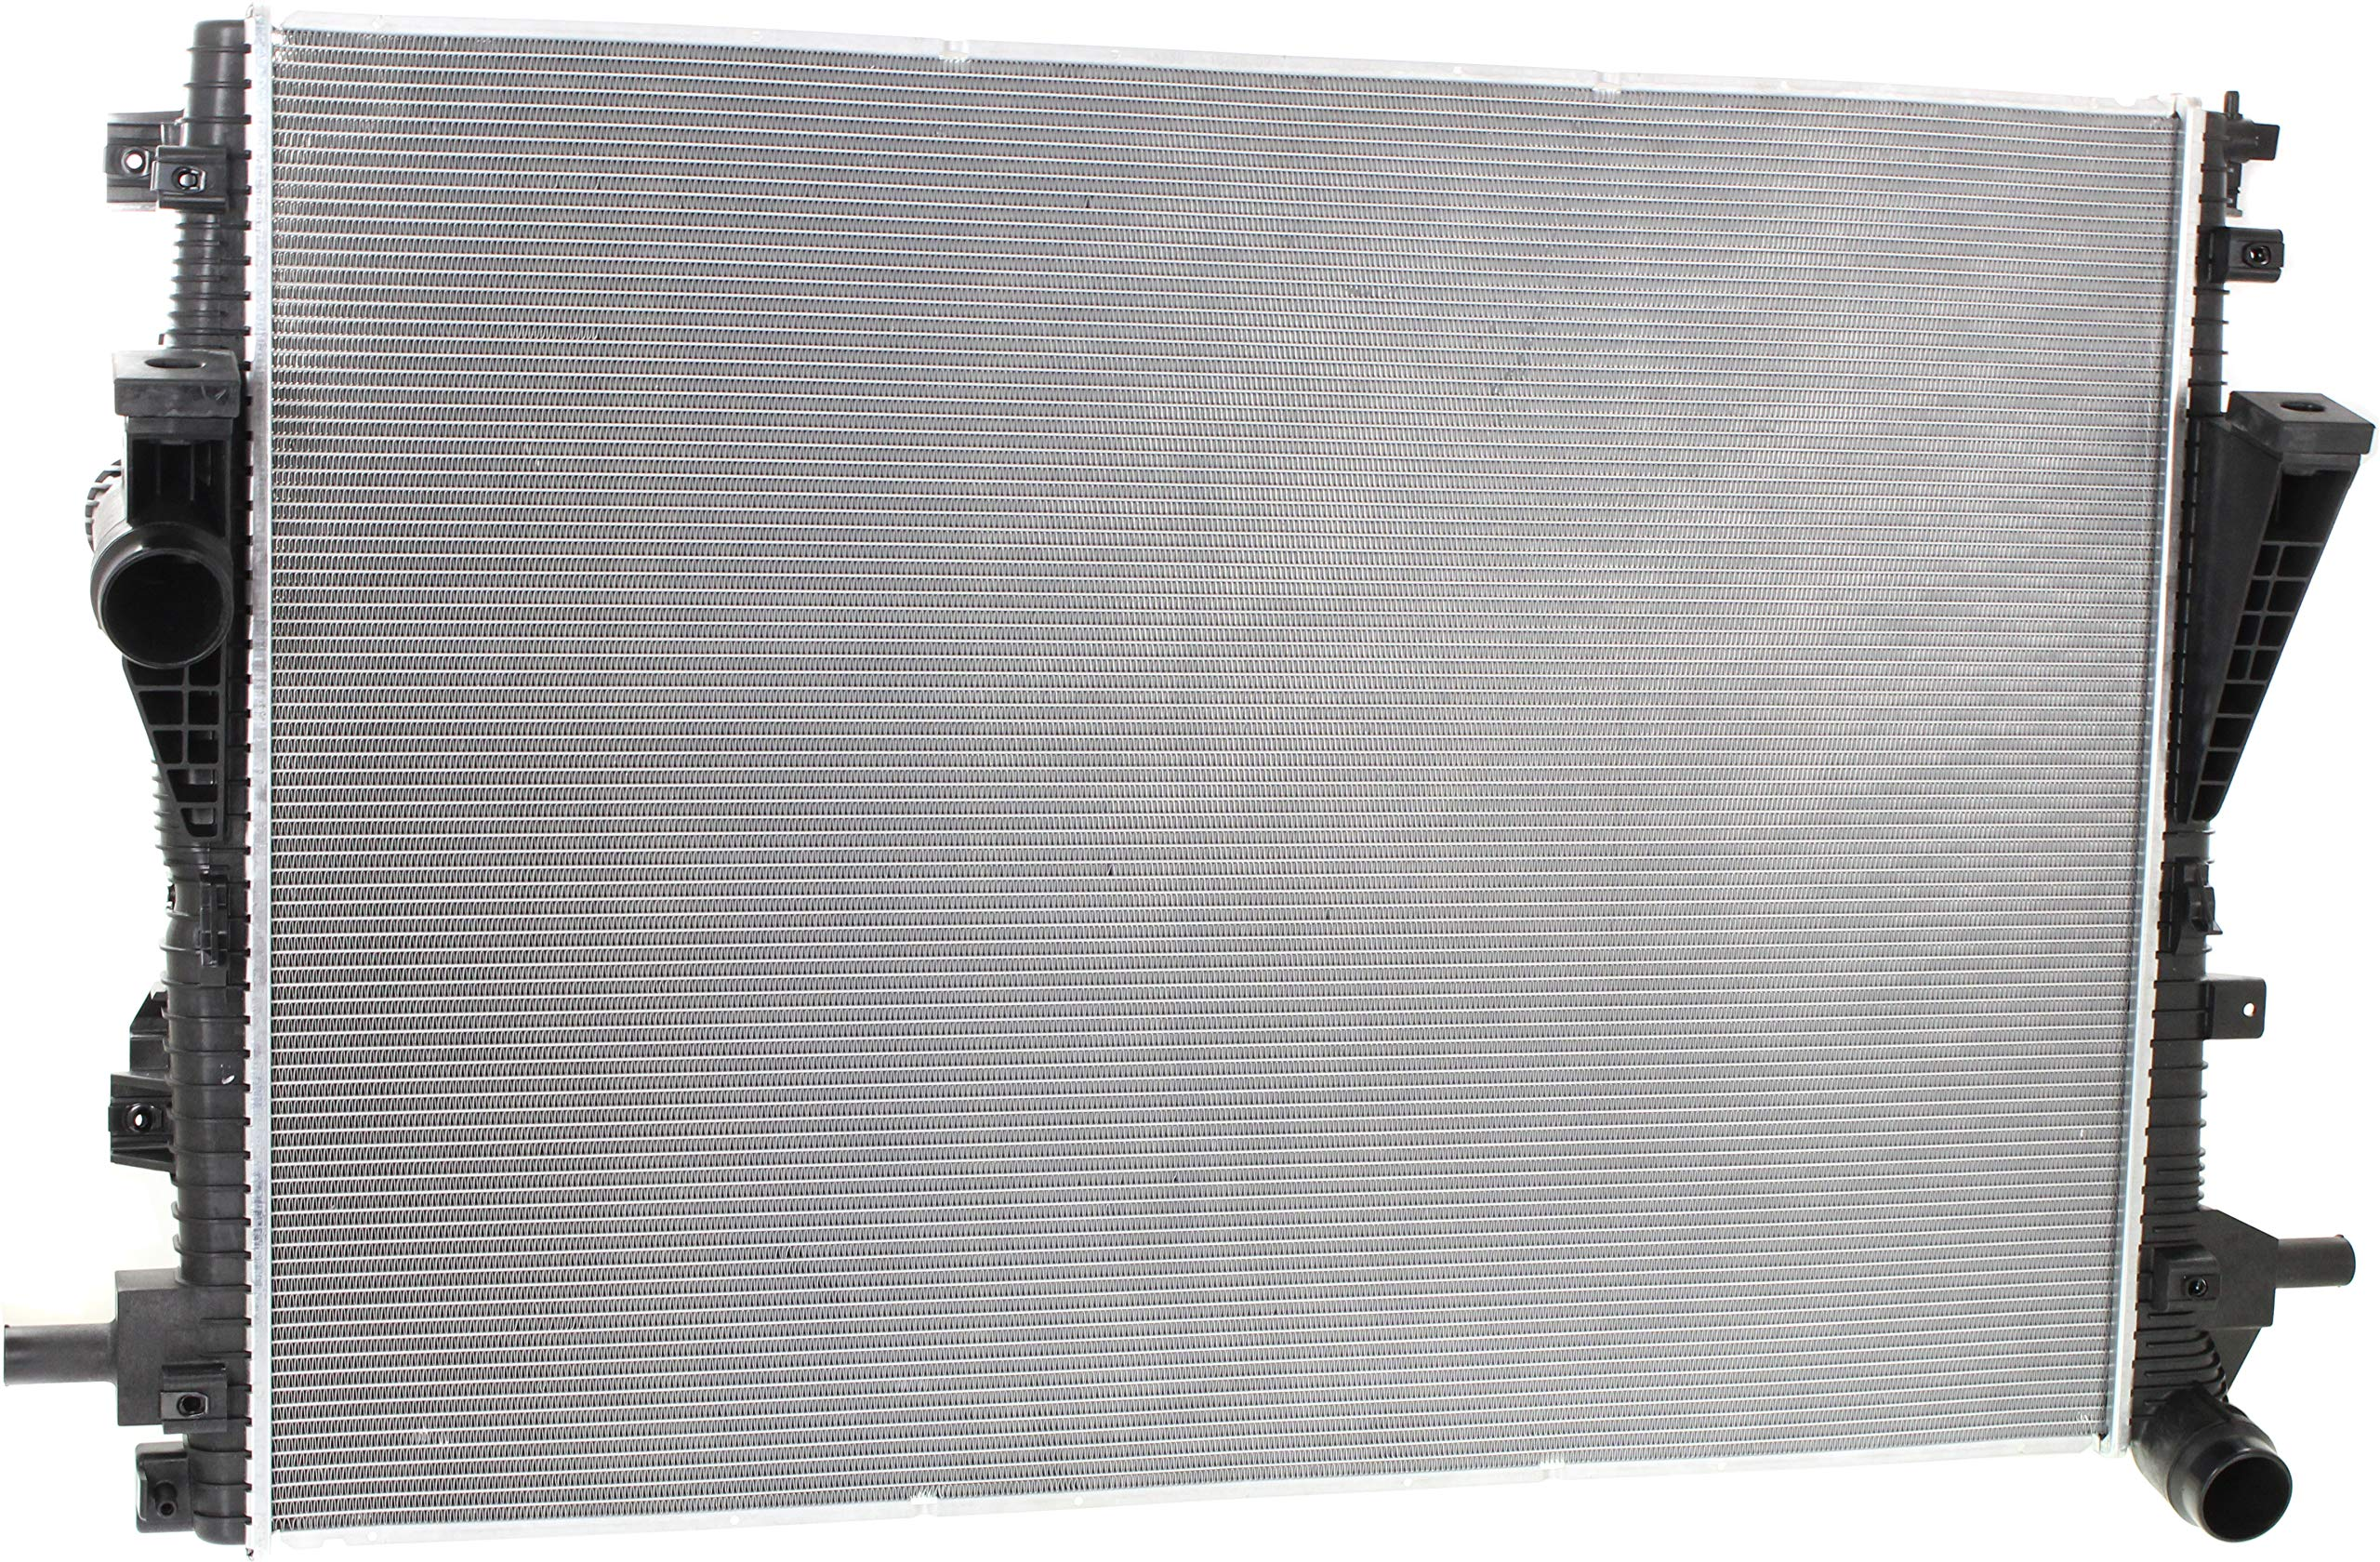 Radiator For//Fit 13339 11-15 Ford Super Duty 6.7L Secondary Radiator